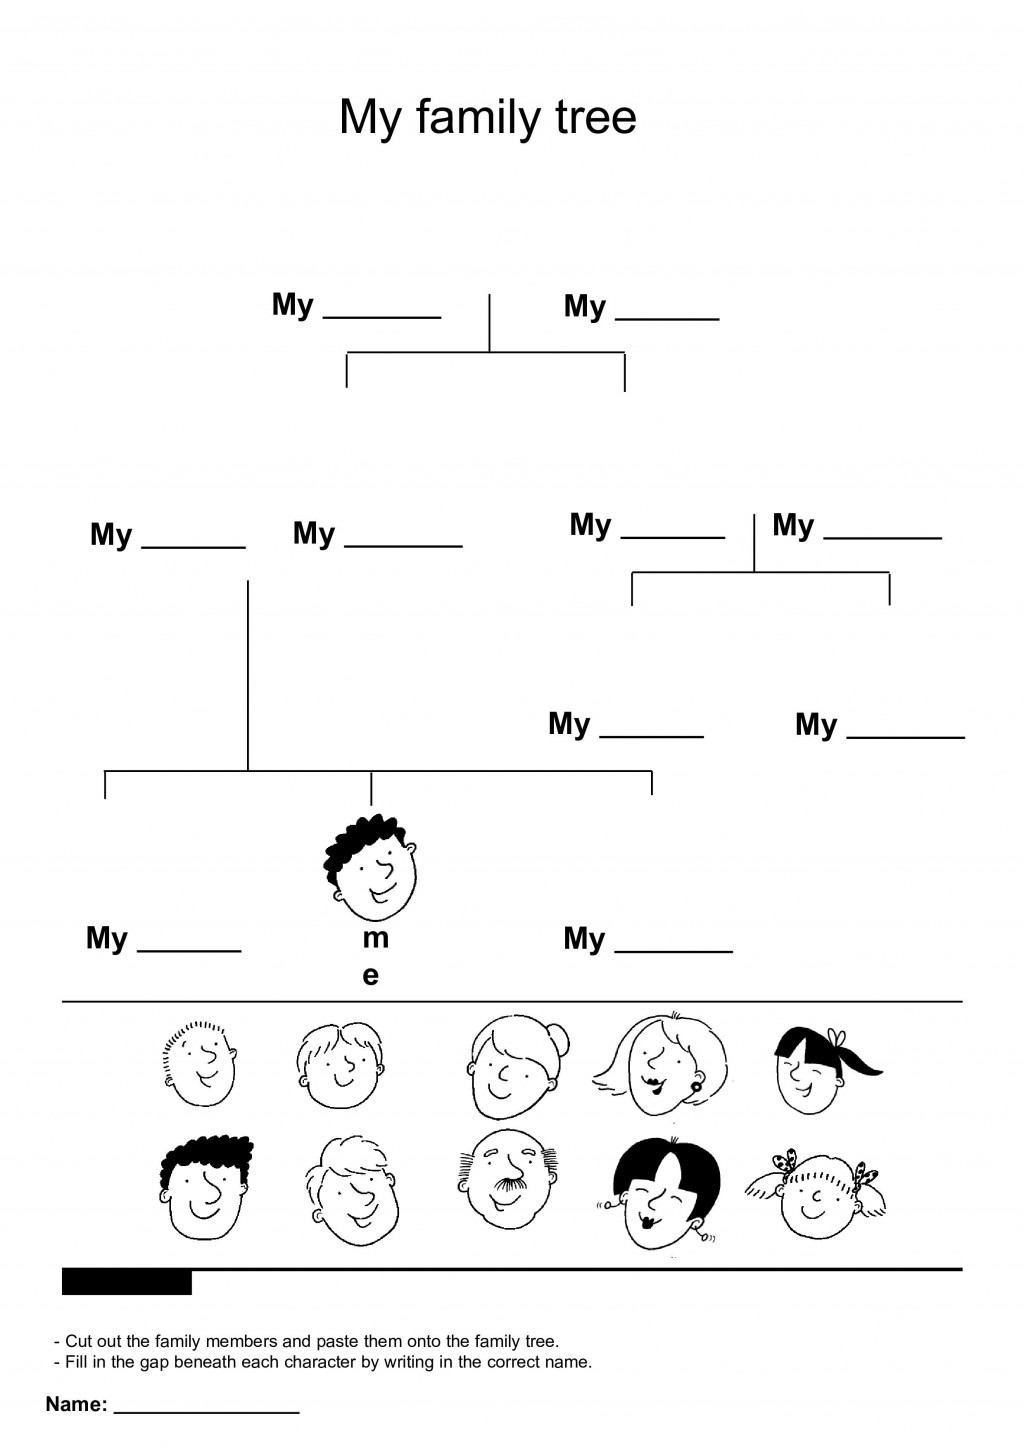 003 Unique Family Tree Template Google Doc Picture  Docs I There A On Free EditableLarge